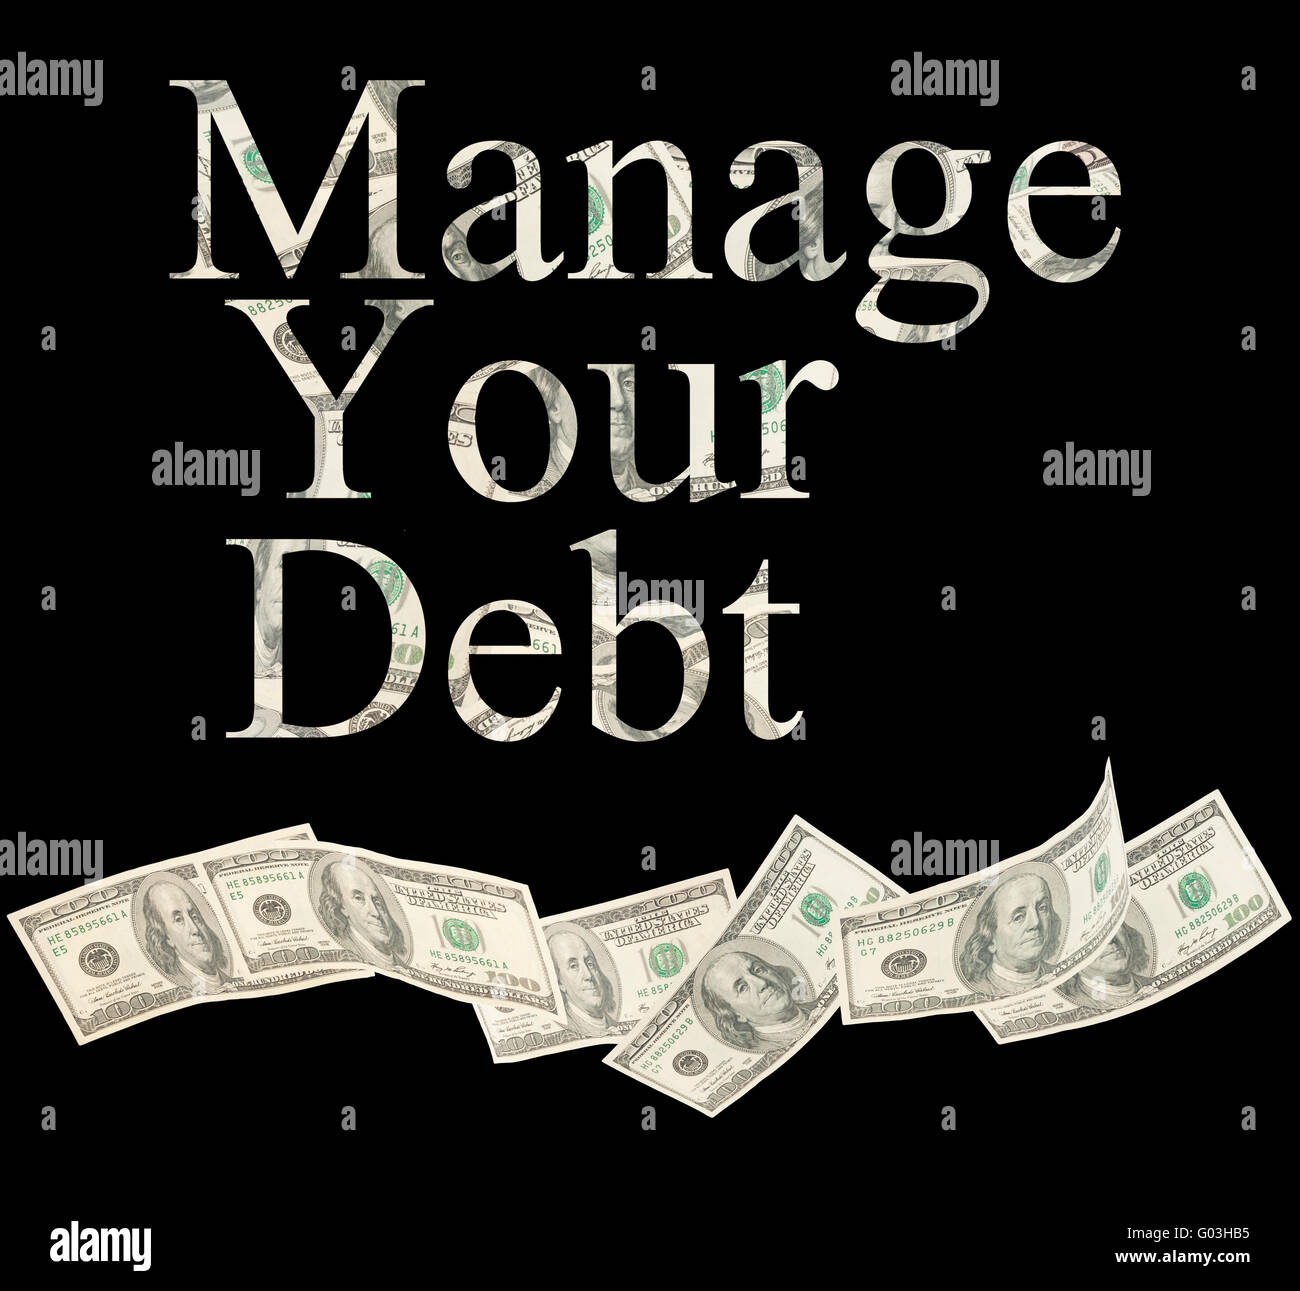 Manage your debt, isolated words with American notes - Stock Image